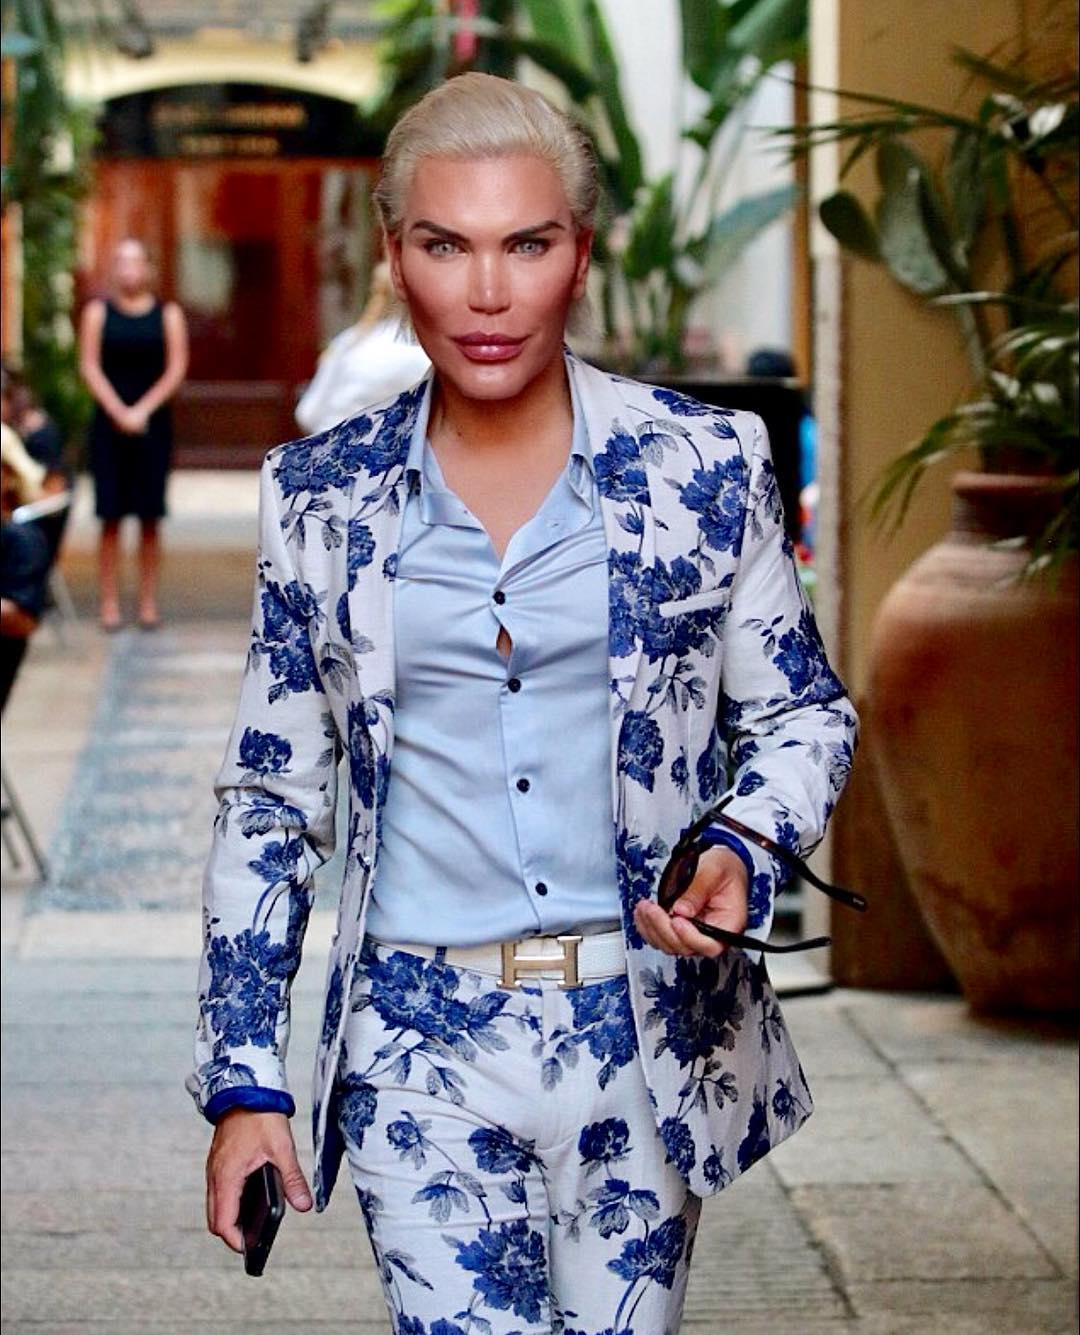 Rodrigo Alves intervento